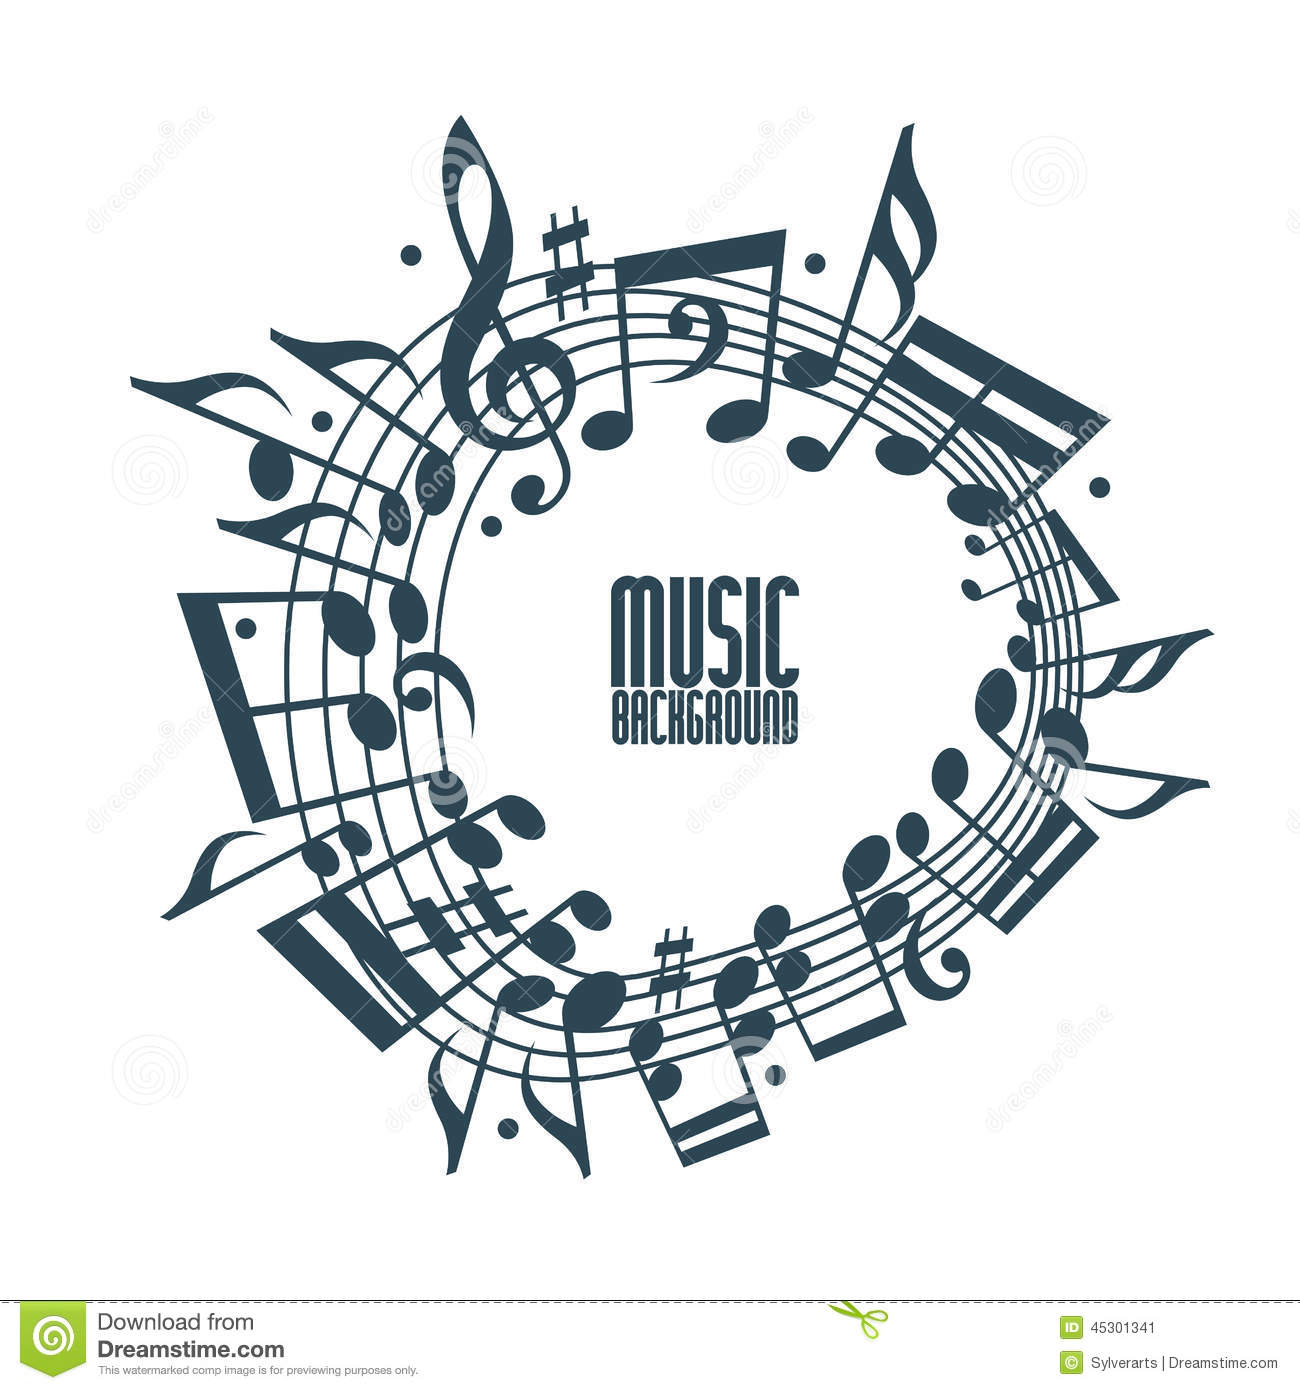 Simple music background with notes and clef stock vector for Copy design